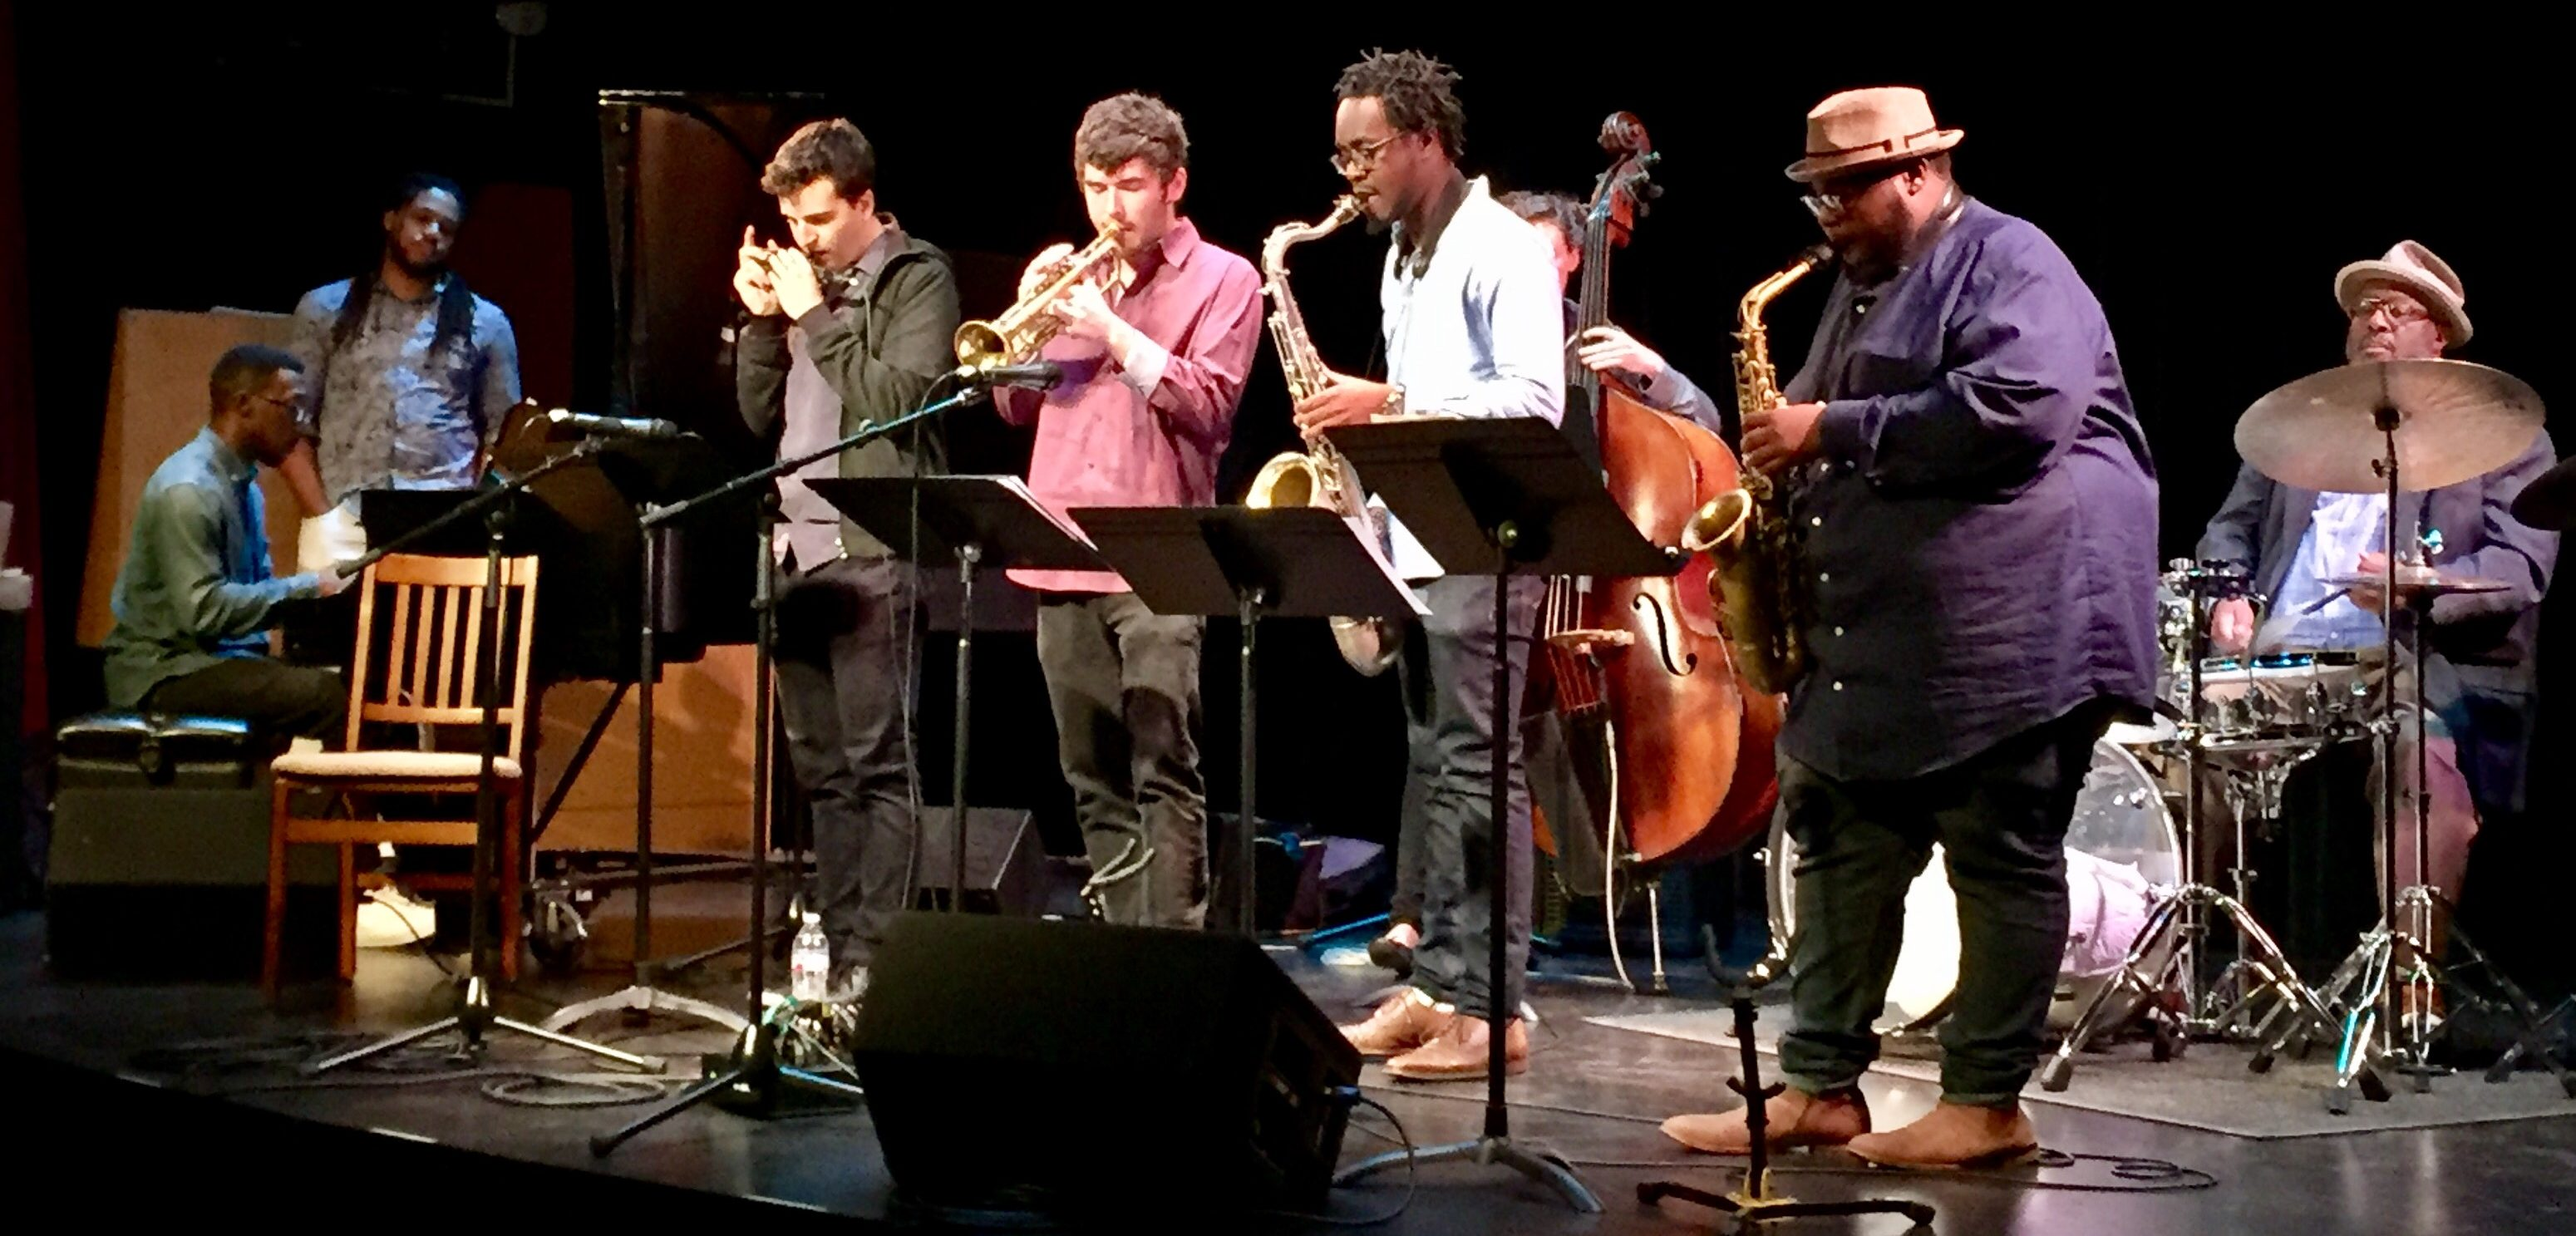 Drummer Carl Allen performs with the Thelonious Monk Institute of Jazz Performance Ensemble. Musicians onstage include a pianist, a harmonicist, a trumpeter, a tenor saxophonist, a bassist and an alto saxophonist.